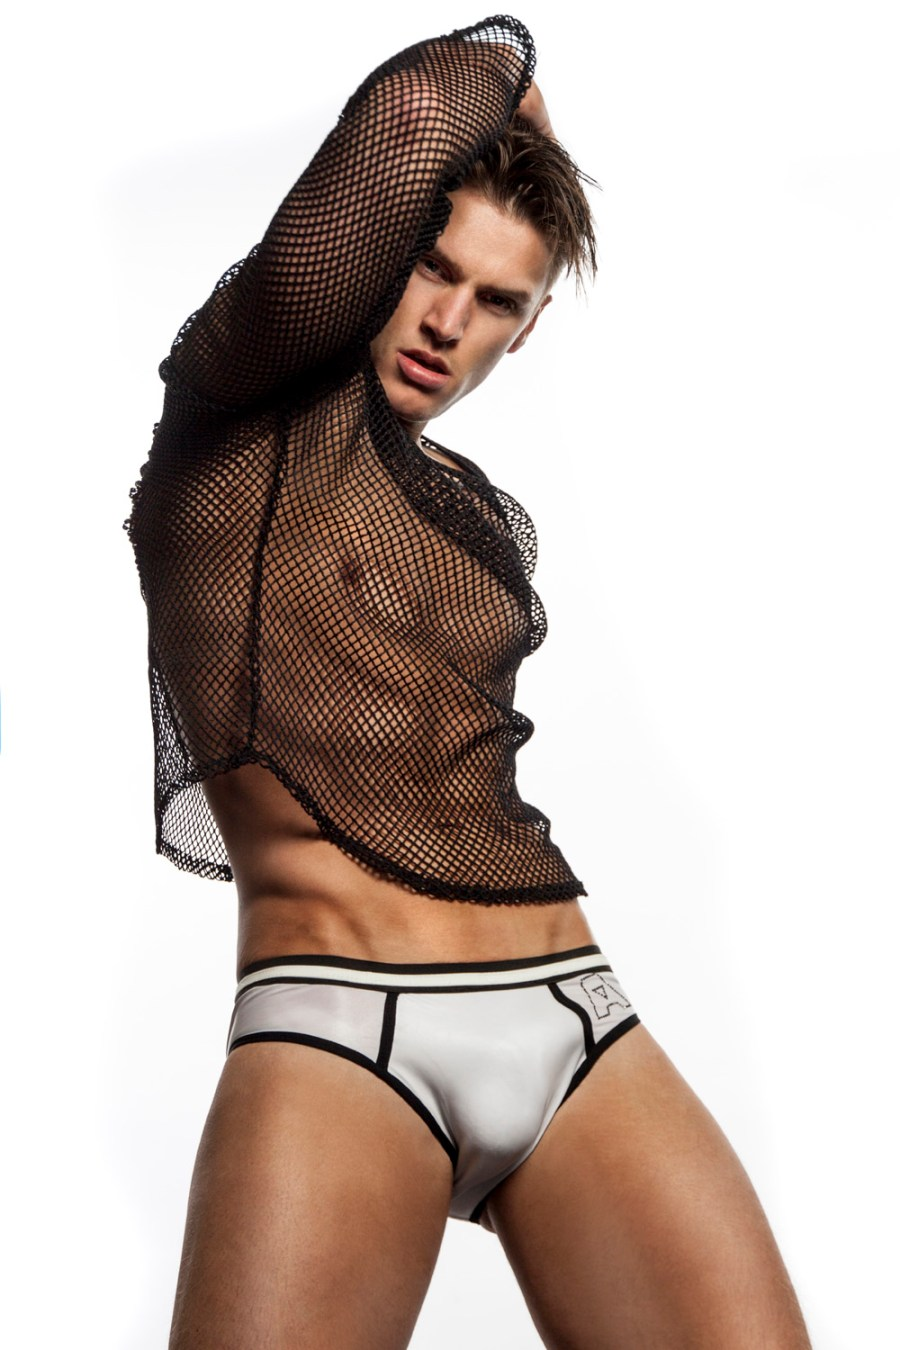 Allan Vos is changing his way of designing fashion, starting with this exclusive capsule collection. Allan no longer brings large collections based on seasons but decided to focus on swimwear, underwear and sportswear that can be worn 365 days a year.